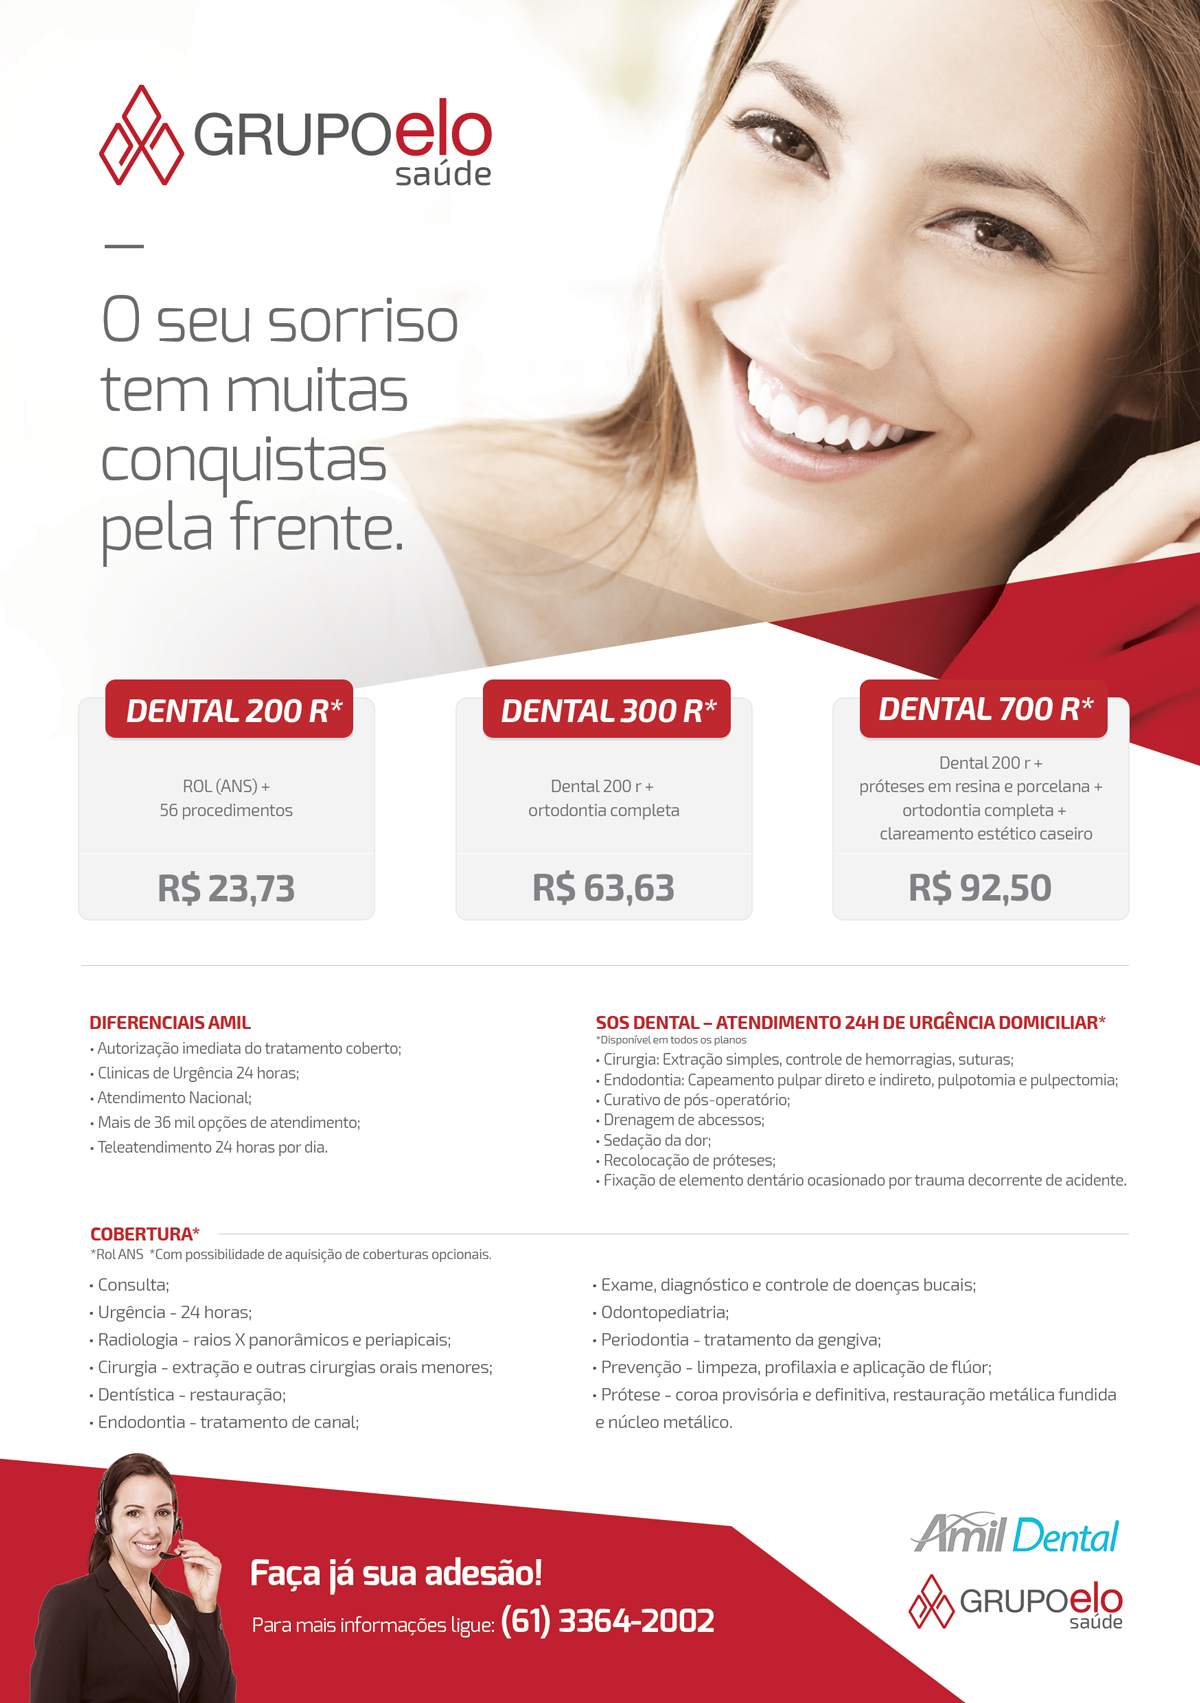 panfleto-amil-dental (2)